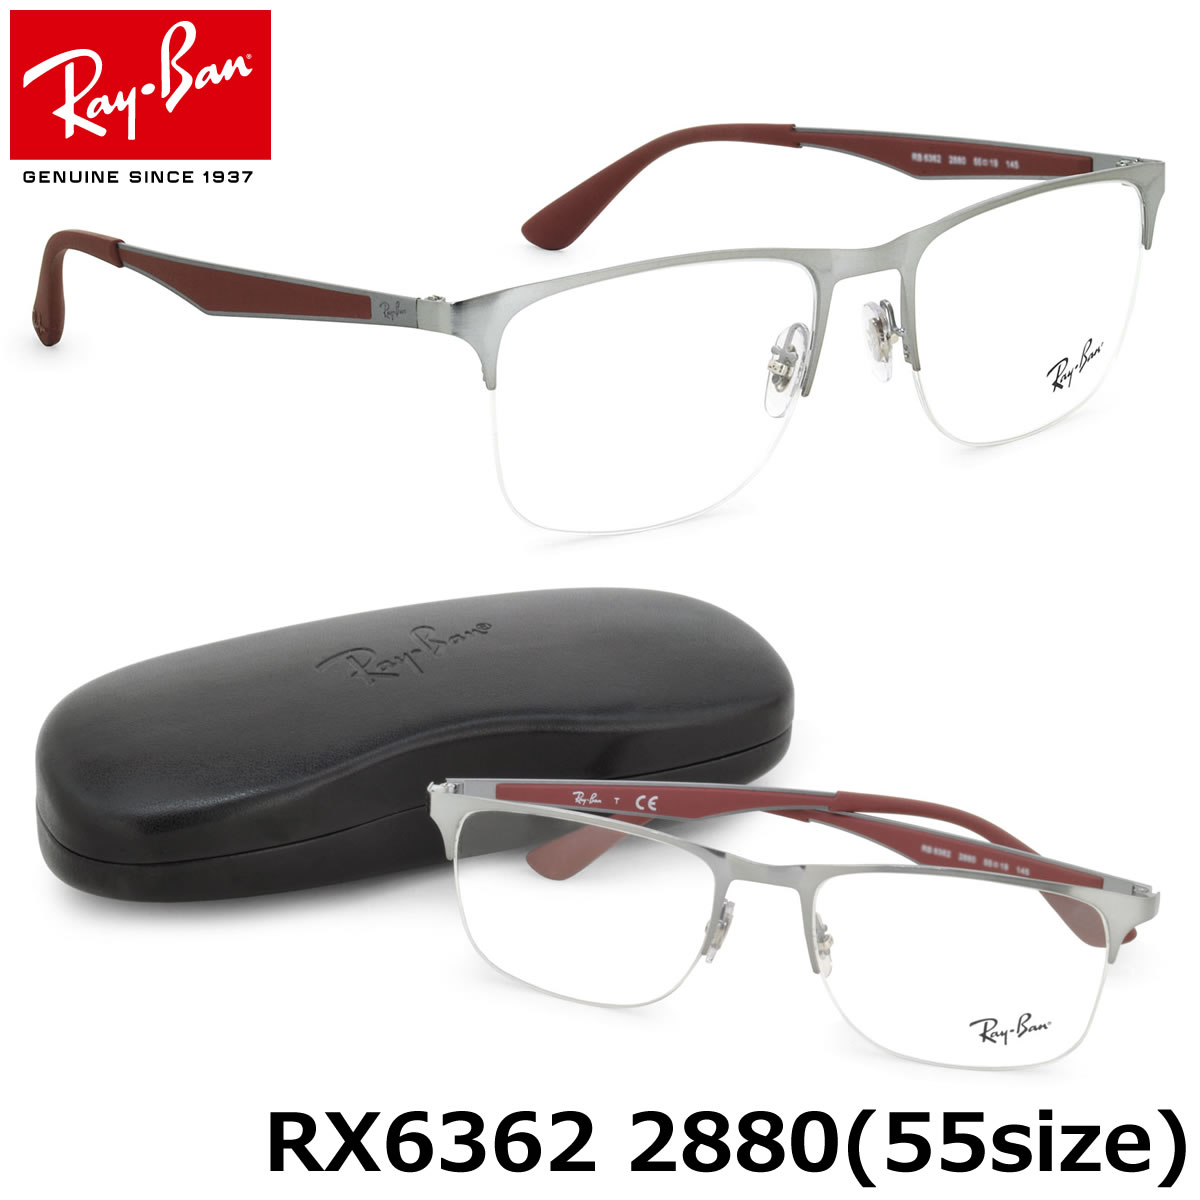 62f0622817c (Ray-Ban) glasses frames RX6362 2880 55 size square nylon Ray Ban RayBan  men s women s